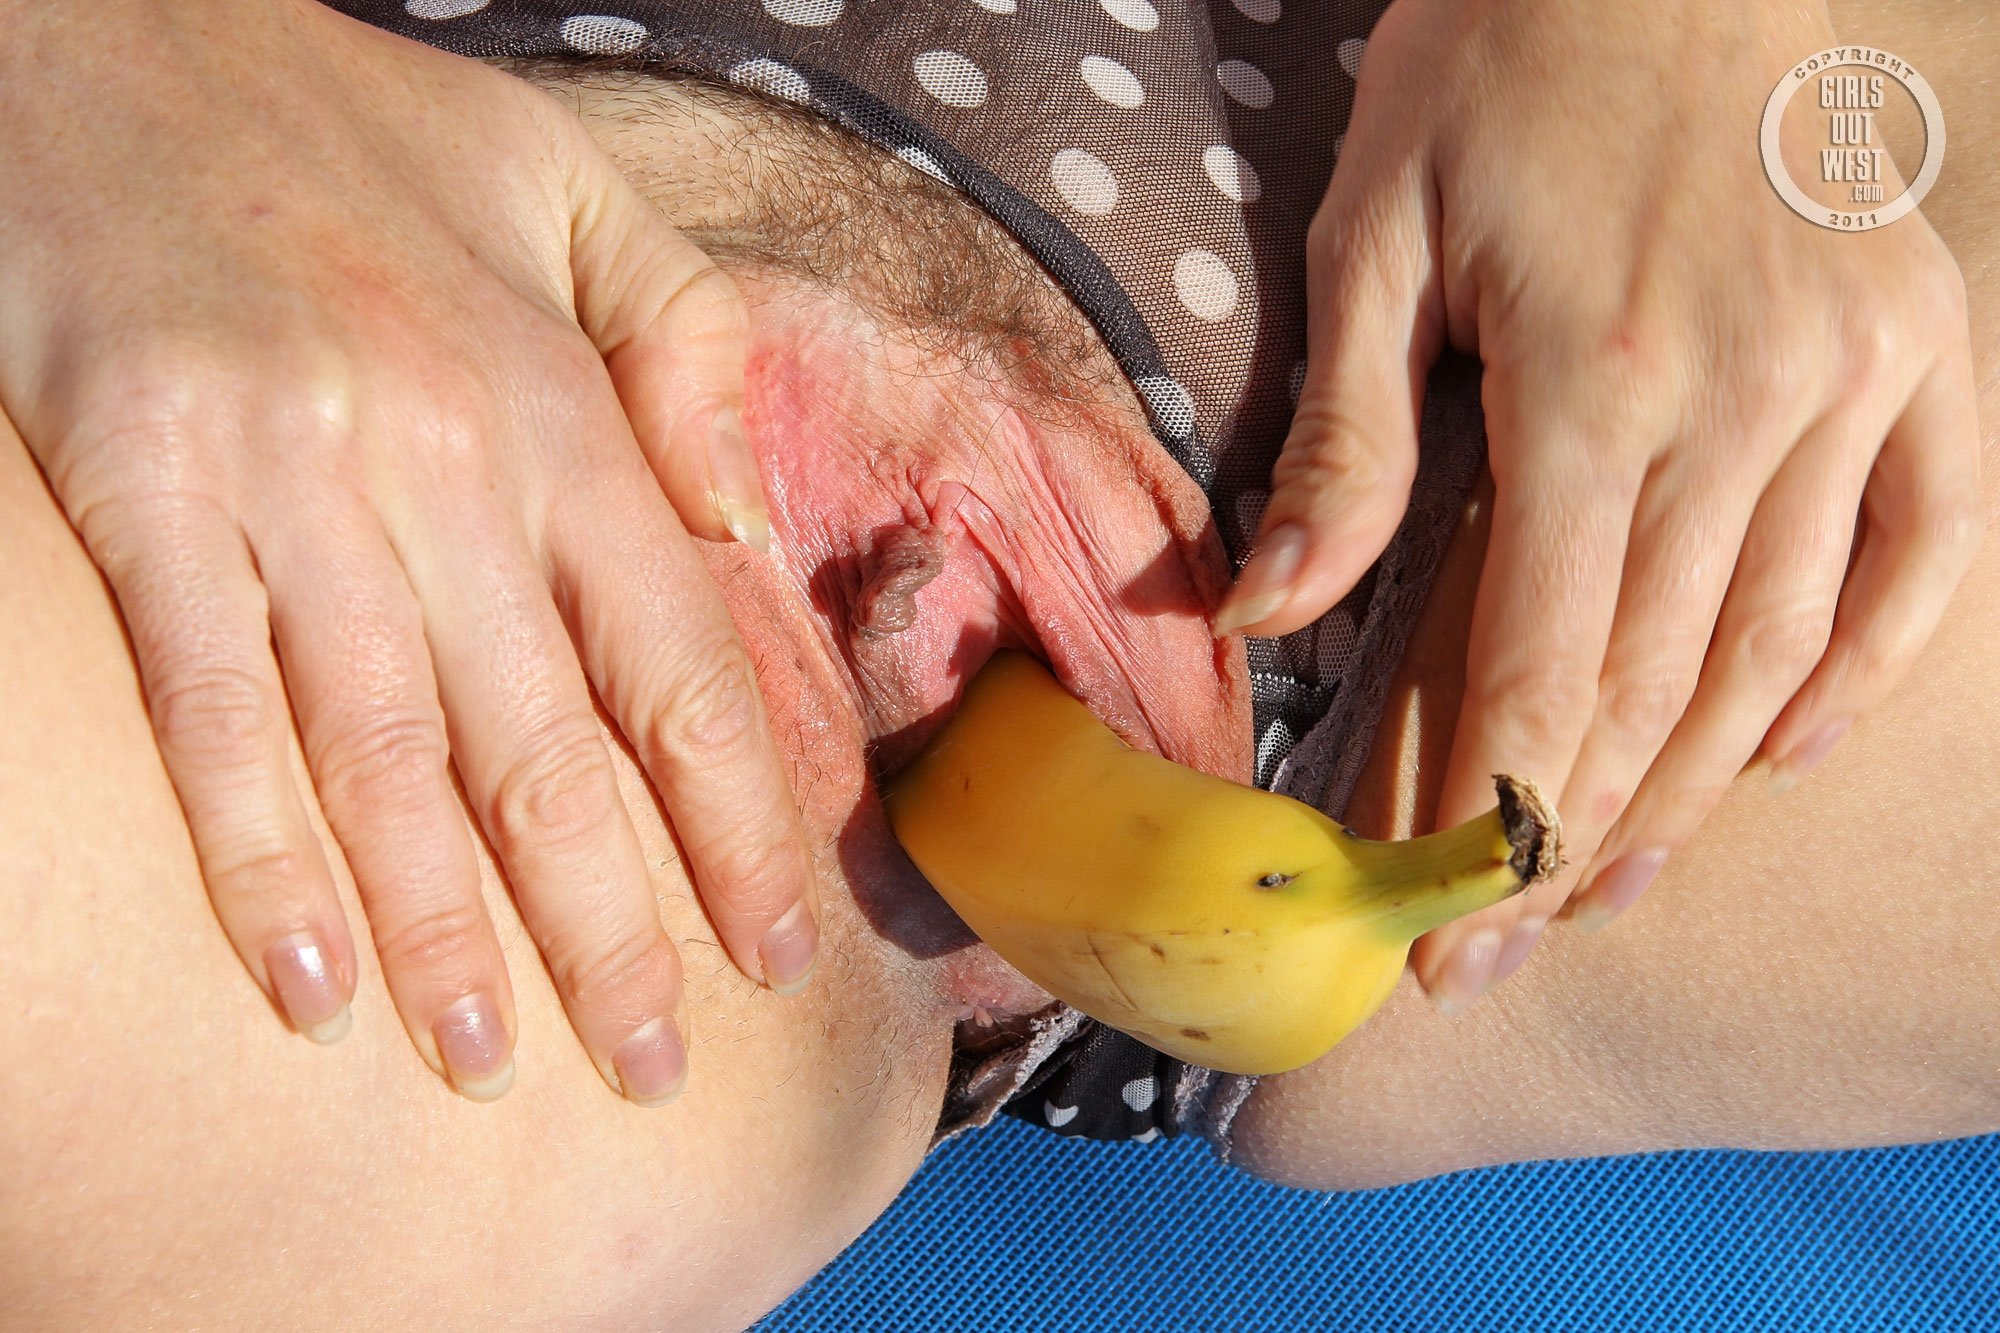 corn-fed-pussy-japanese-girl-gets-filled-with-cum